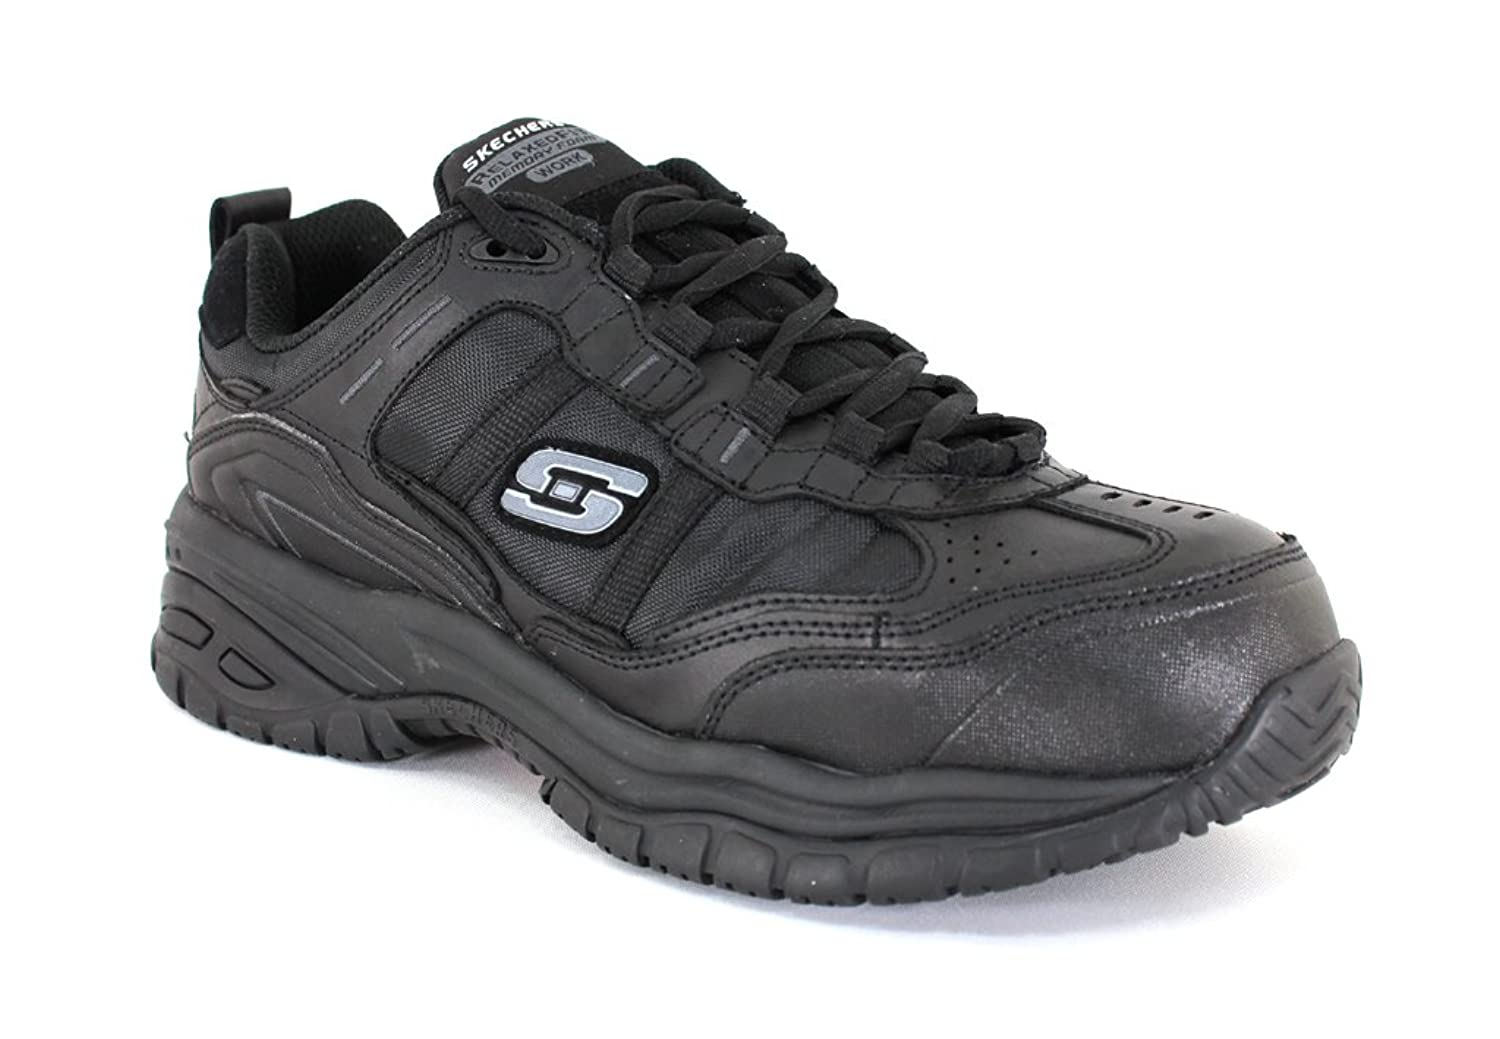 Skechers Men 's Soft Stride Grinnelブラックレザー作業10 D ( M ) US B01APRYQBG